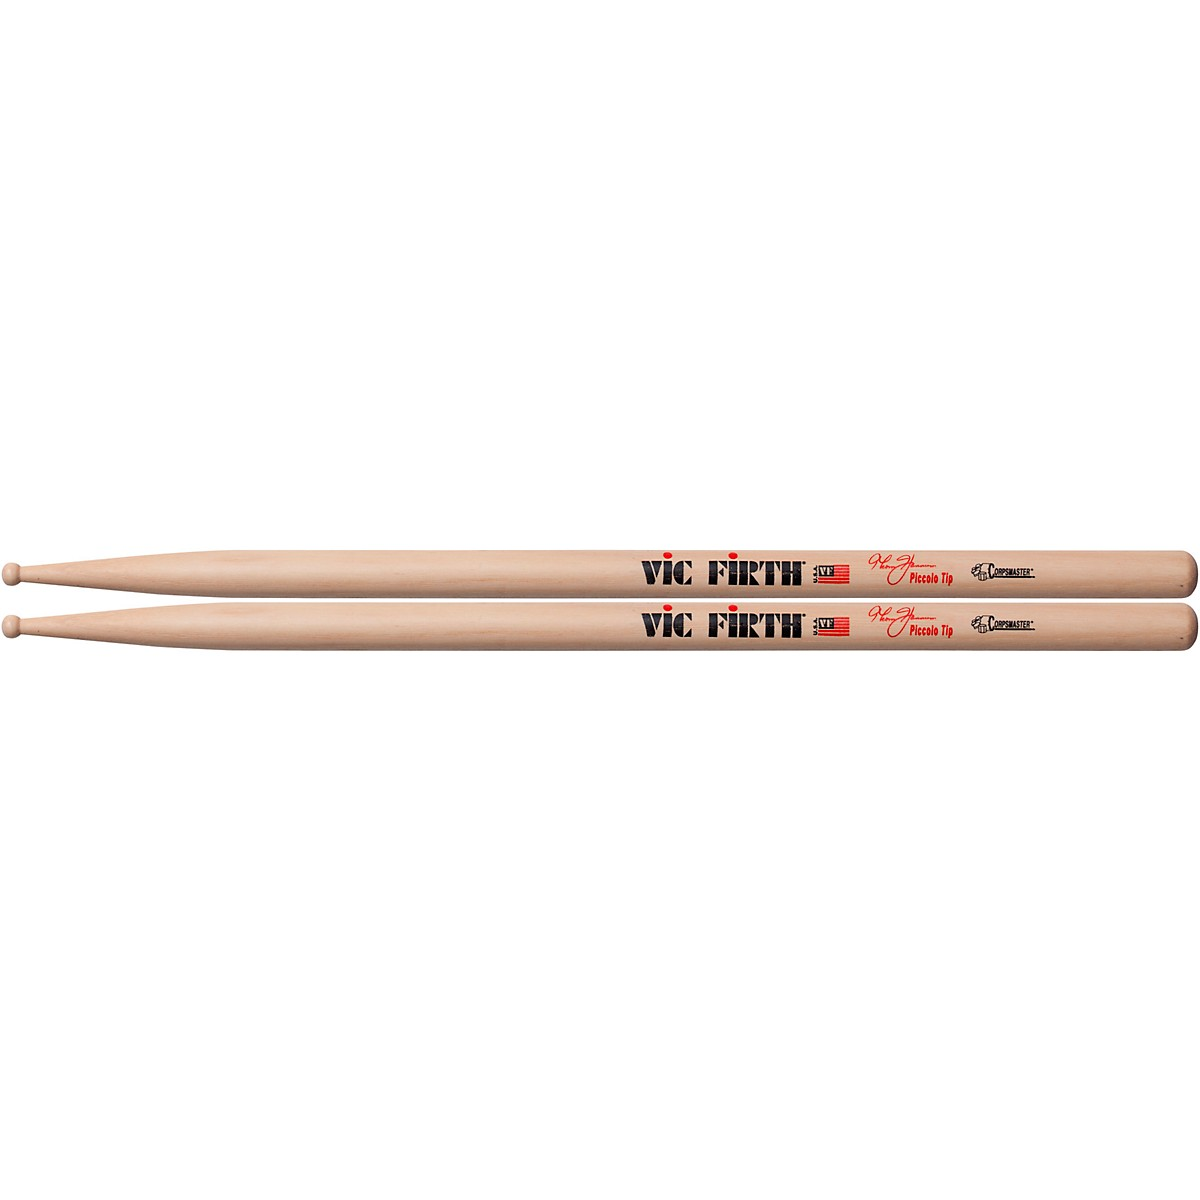 Vic Firth Corpsmaster Thom Hannum Piccolo Tip Snare Sticks